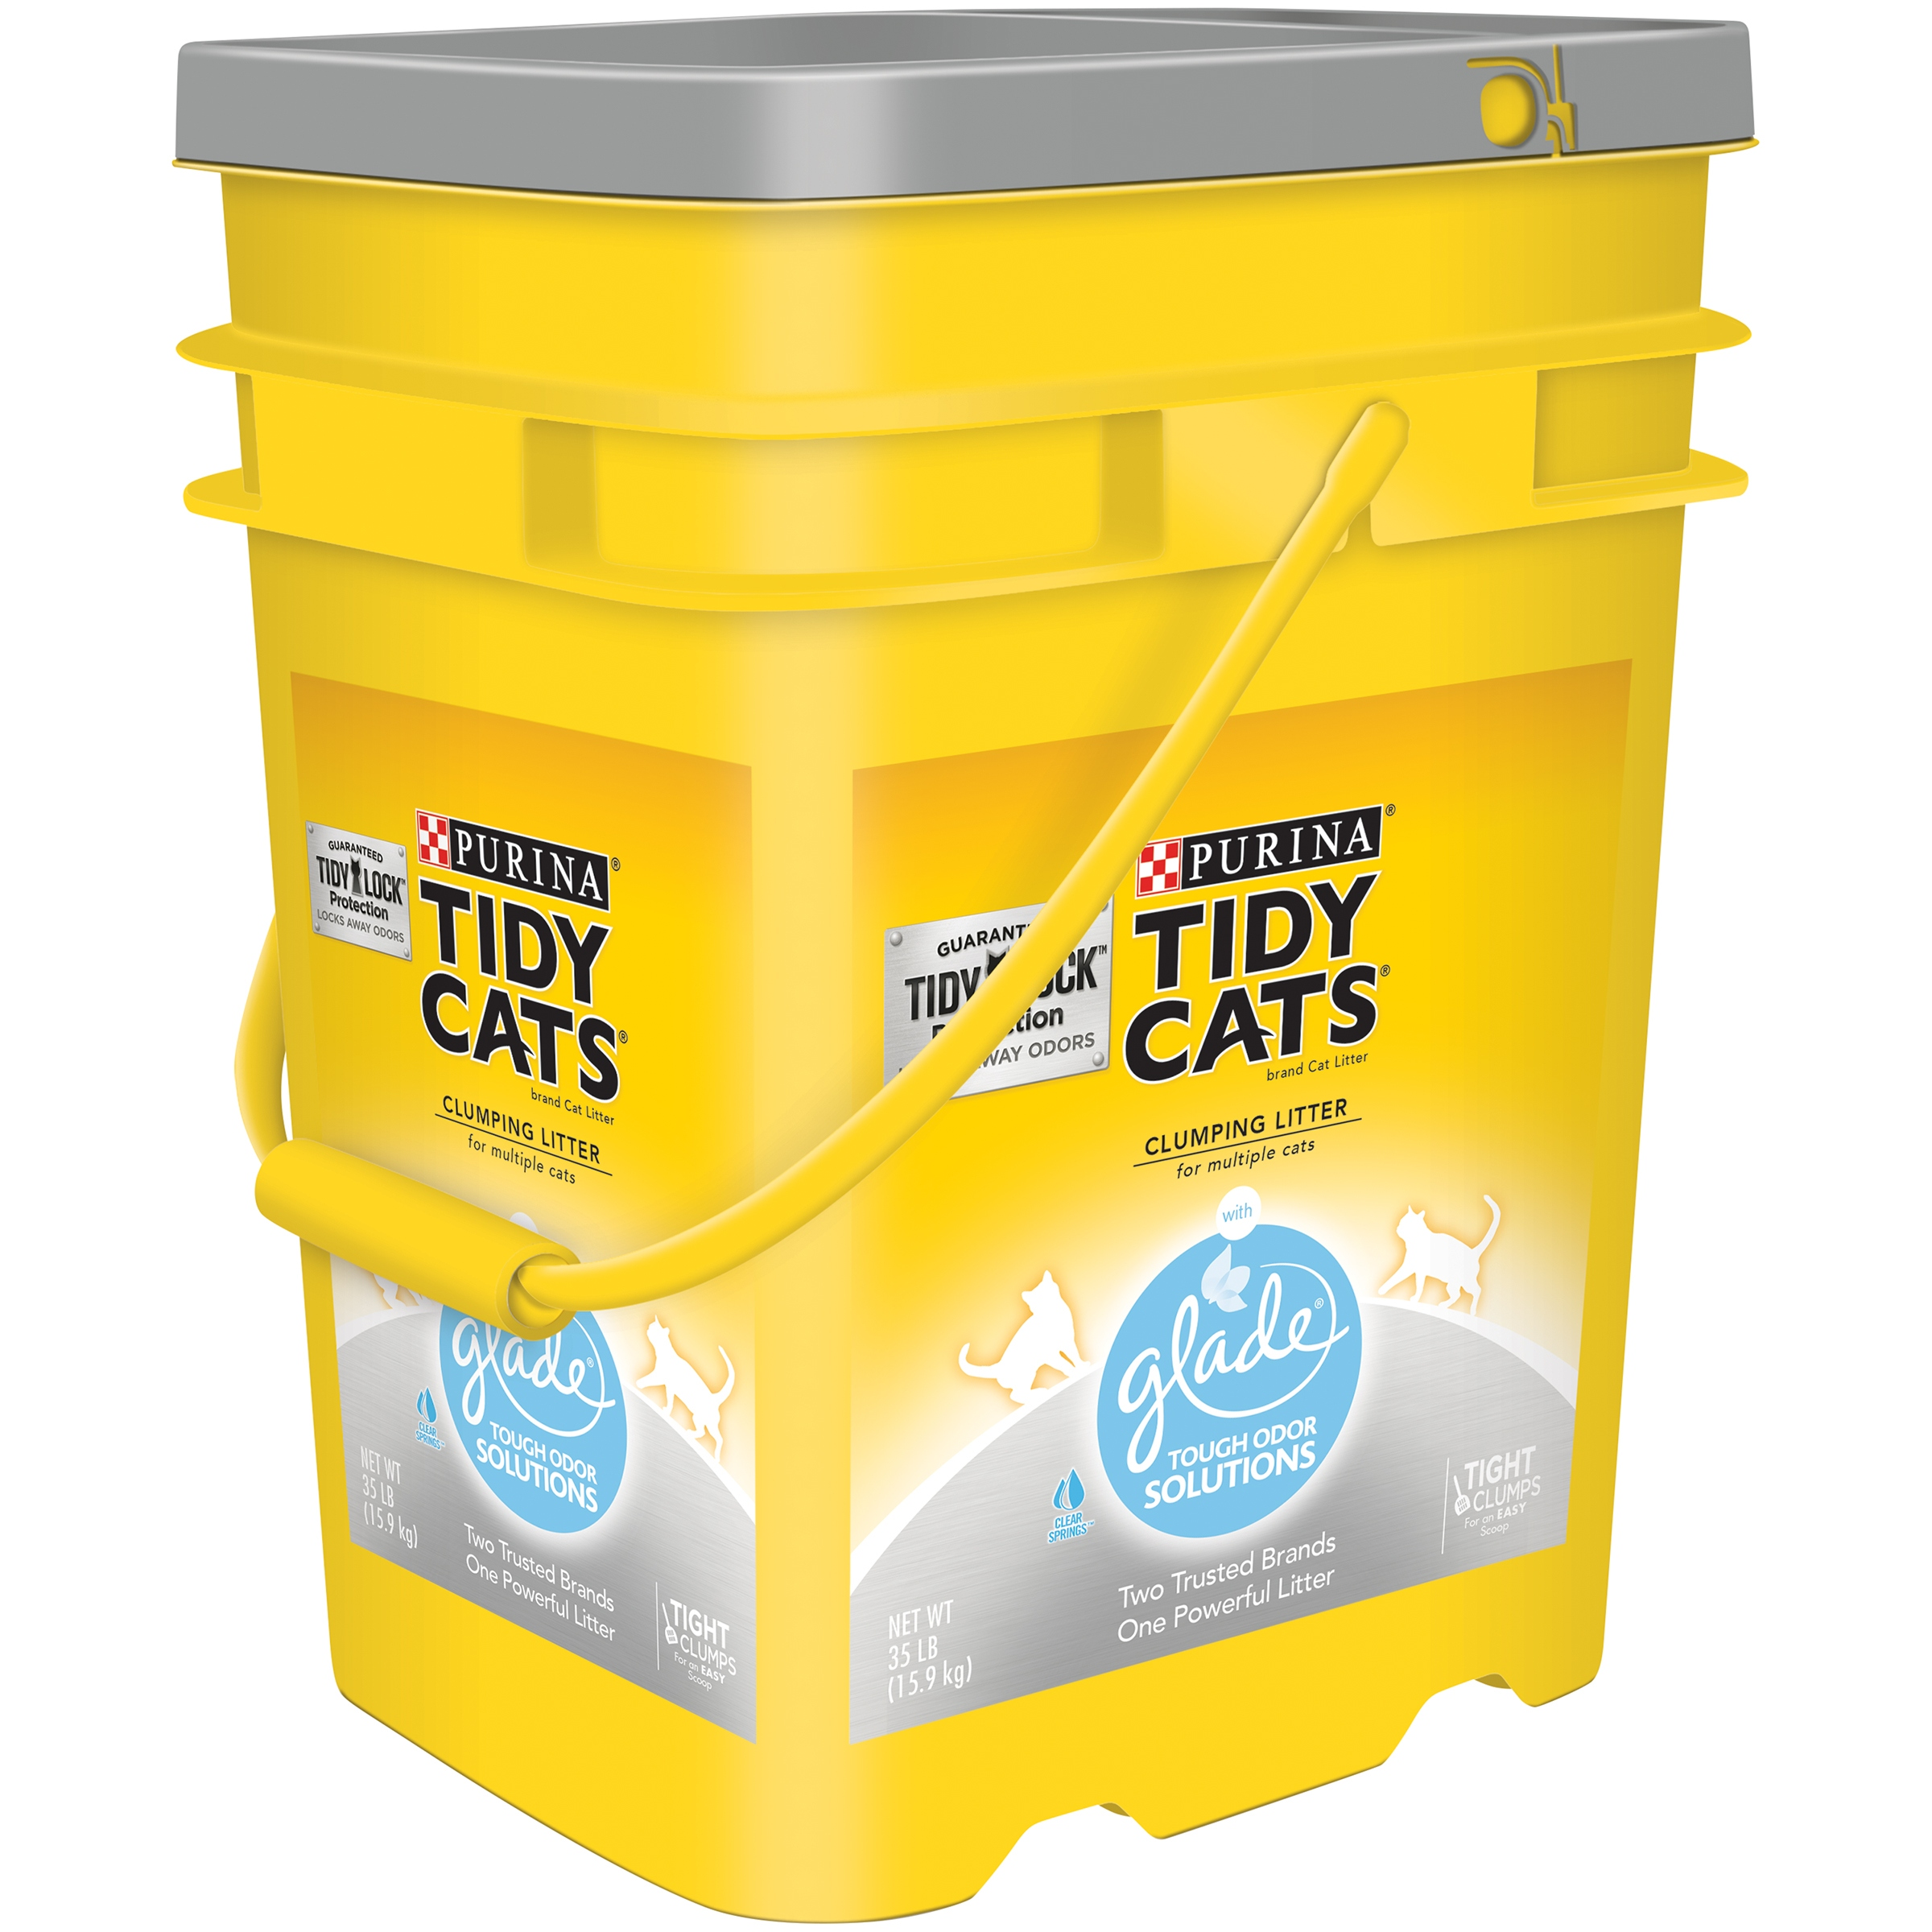 Purina Tidy Cats Clumping Cat Litter with Glade Tough Odor Solutions Clear Springs for Multiple Cats 35lb. Pail